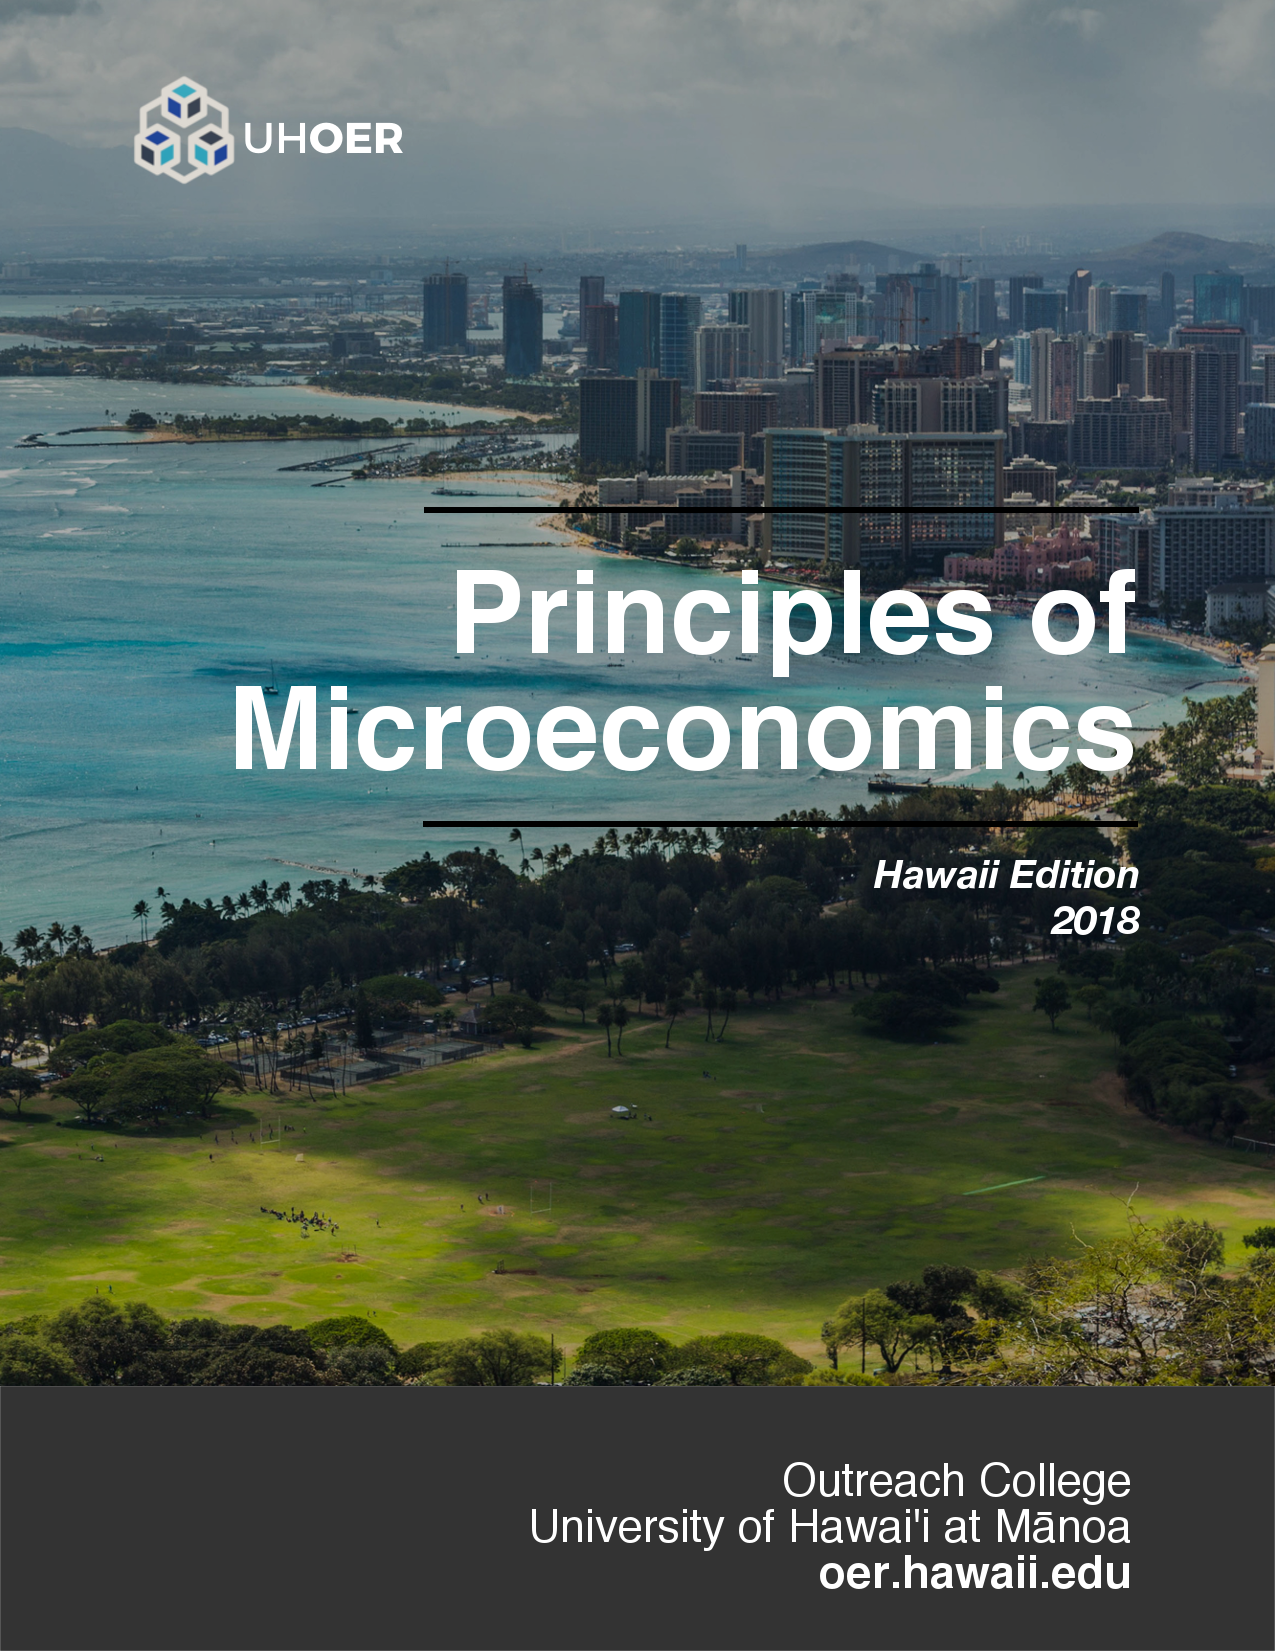 Cover image for Principles of Microeconomics - Hawaii Edition